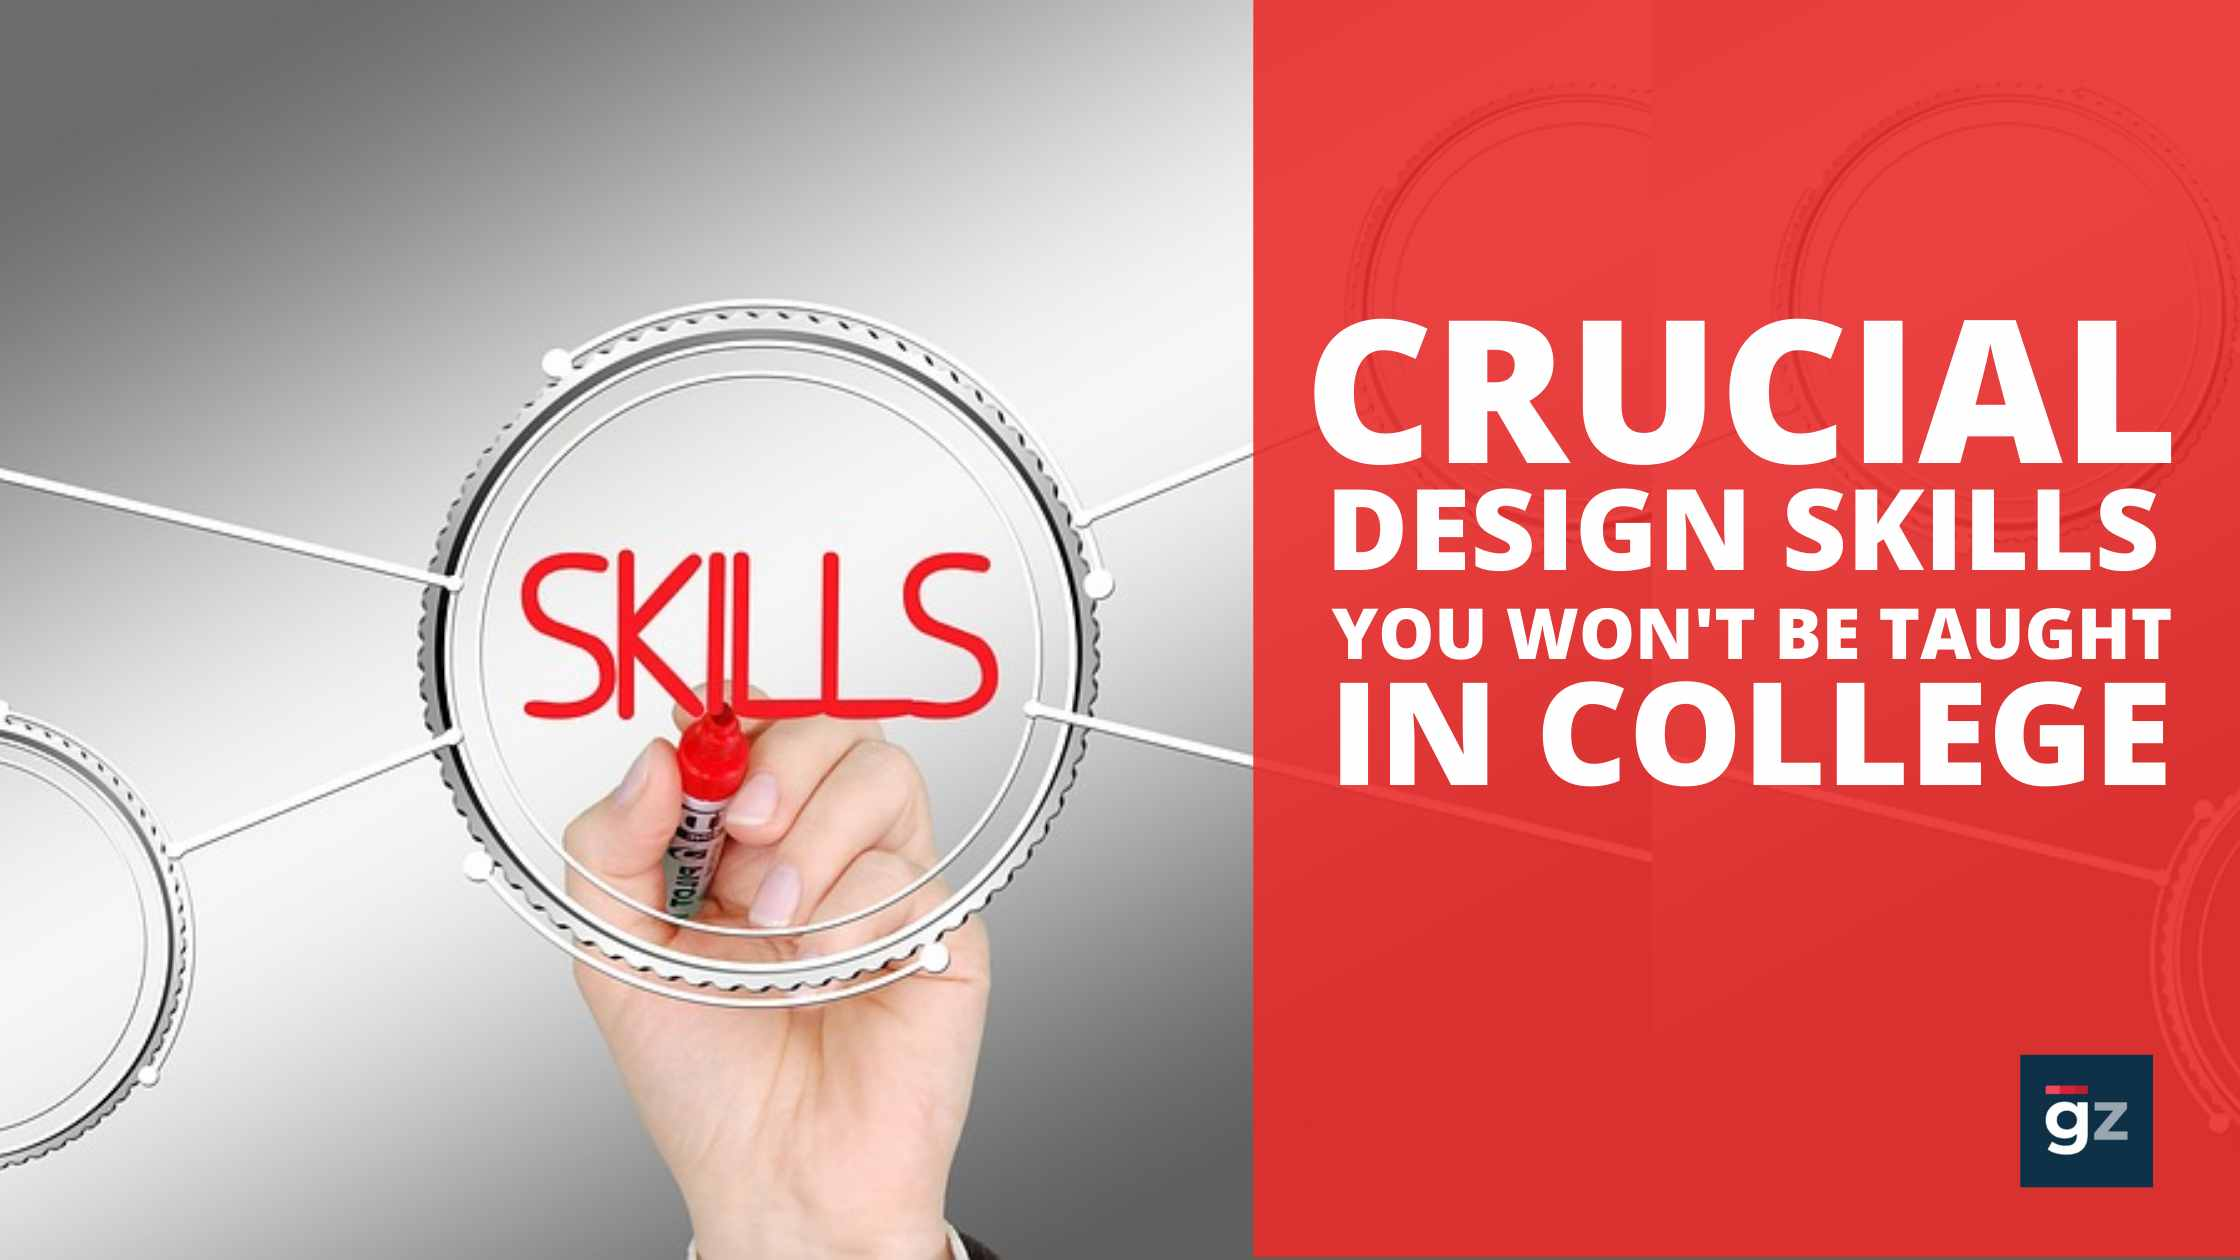 Crucial Design Skills You Won't Be Taught In College